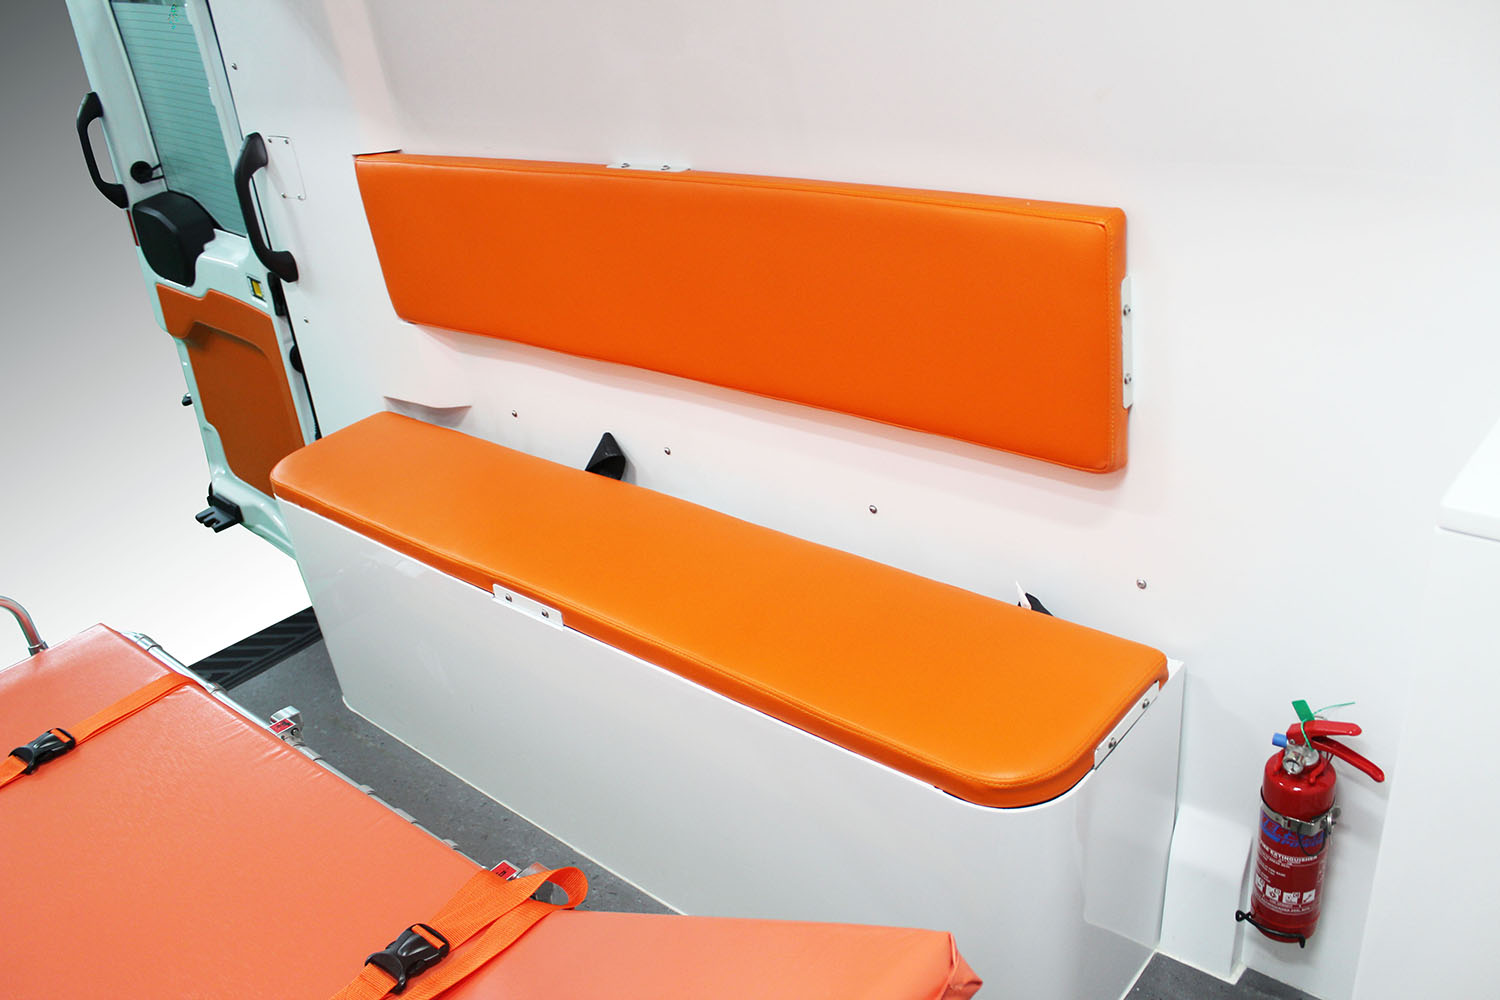 Bench Seat with seatbelt